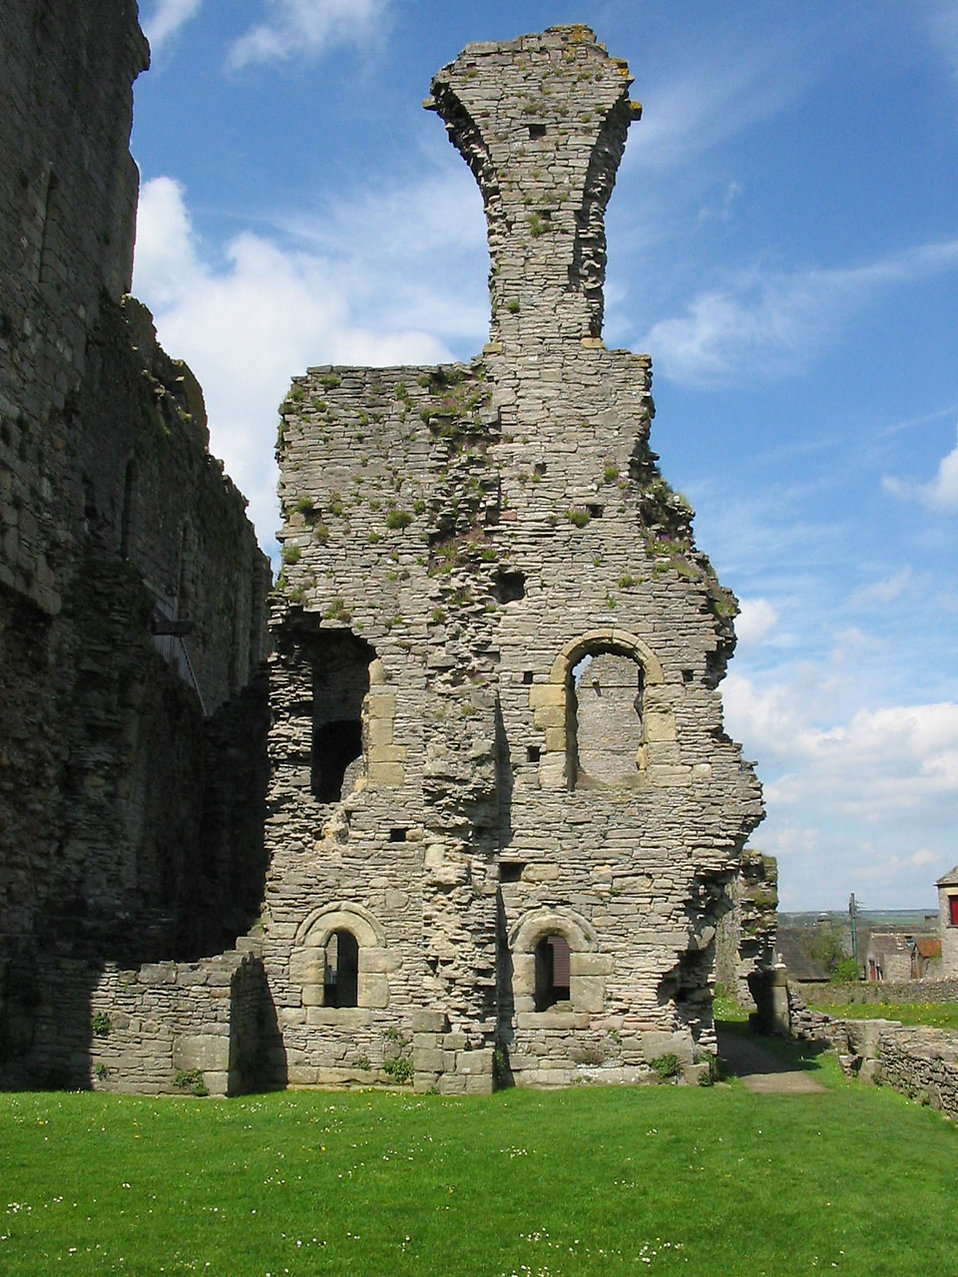 Ruins of Richmond castle : Free Stock Photo